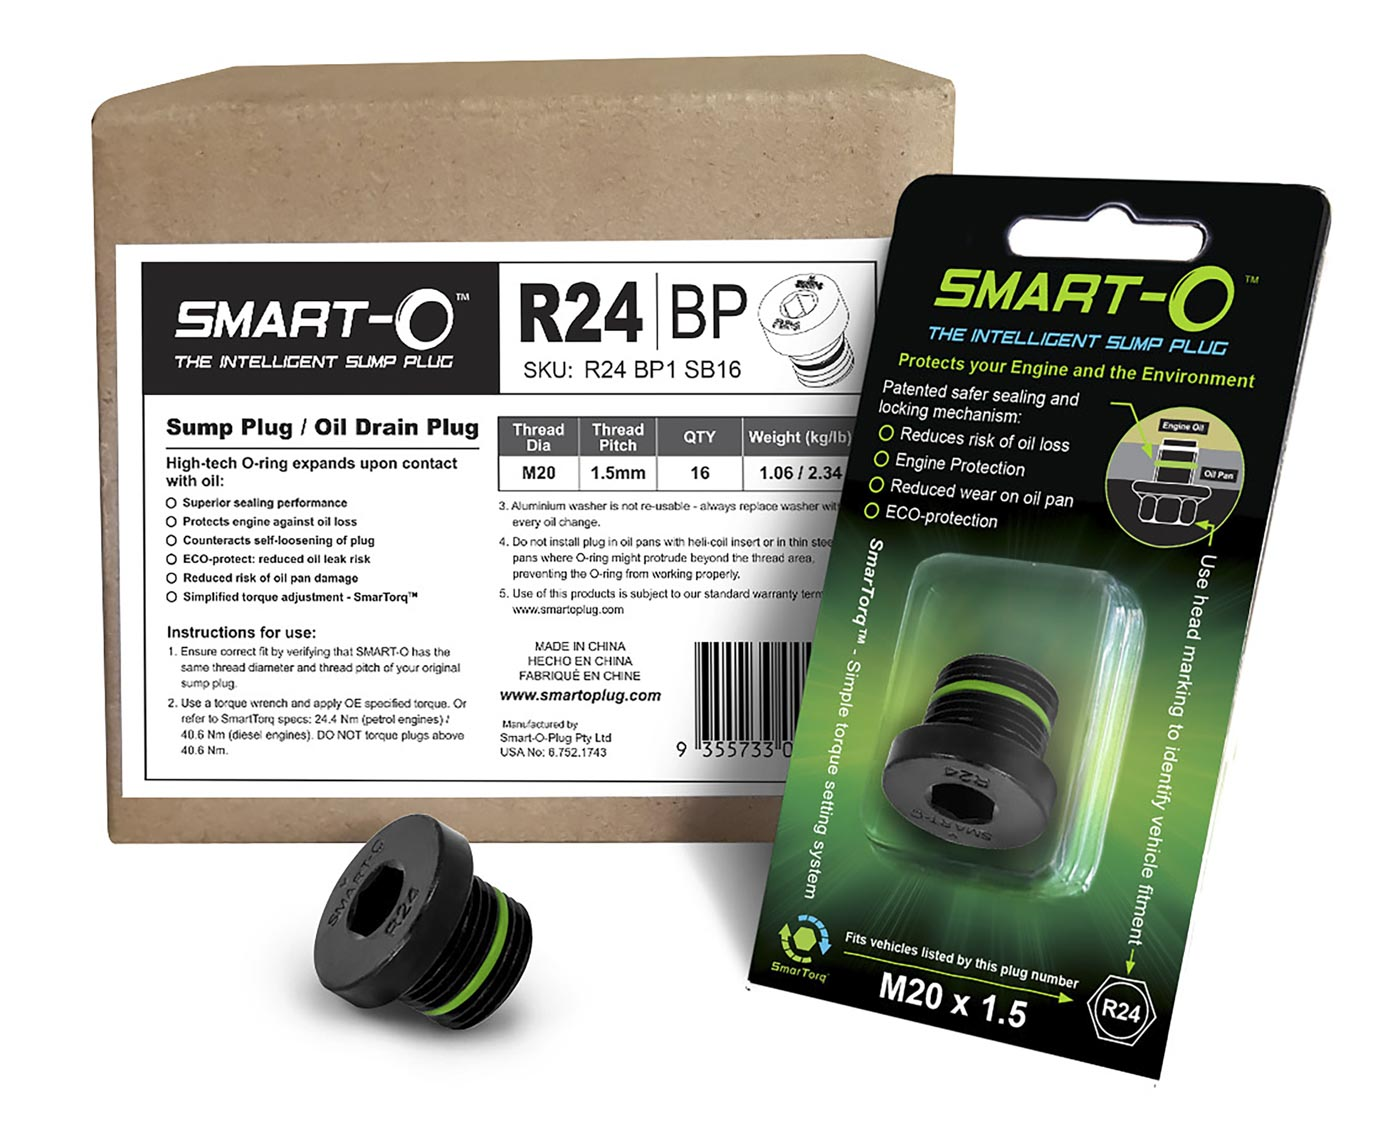 SMART-O Replenishment Box of 16 x R24BP1 Sump Plugs